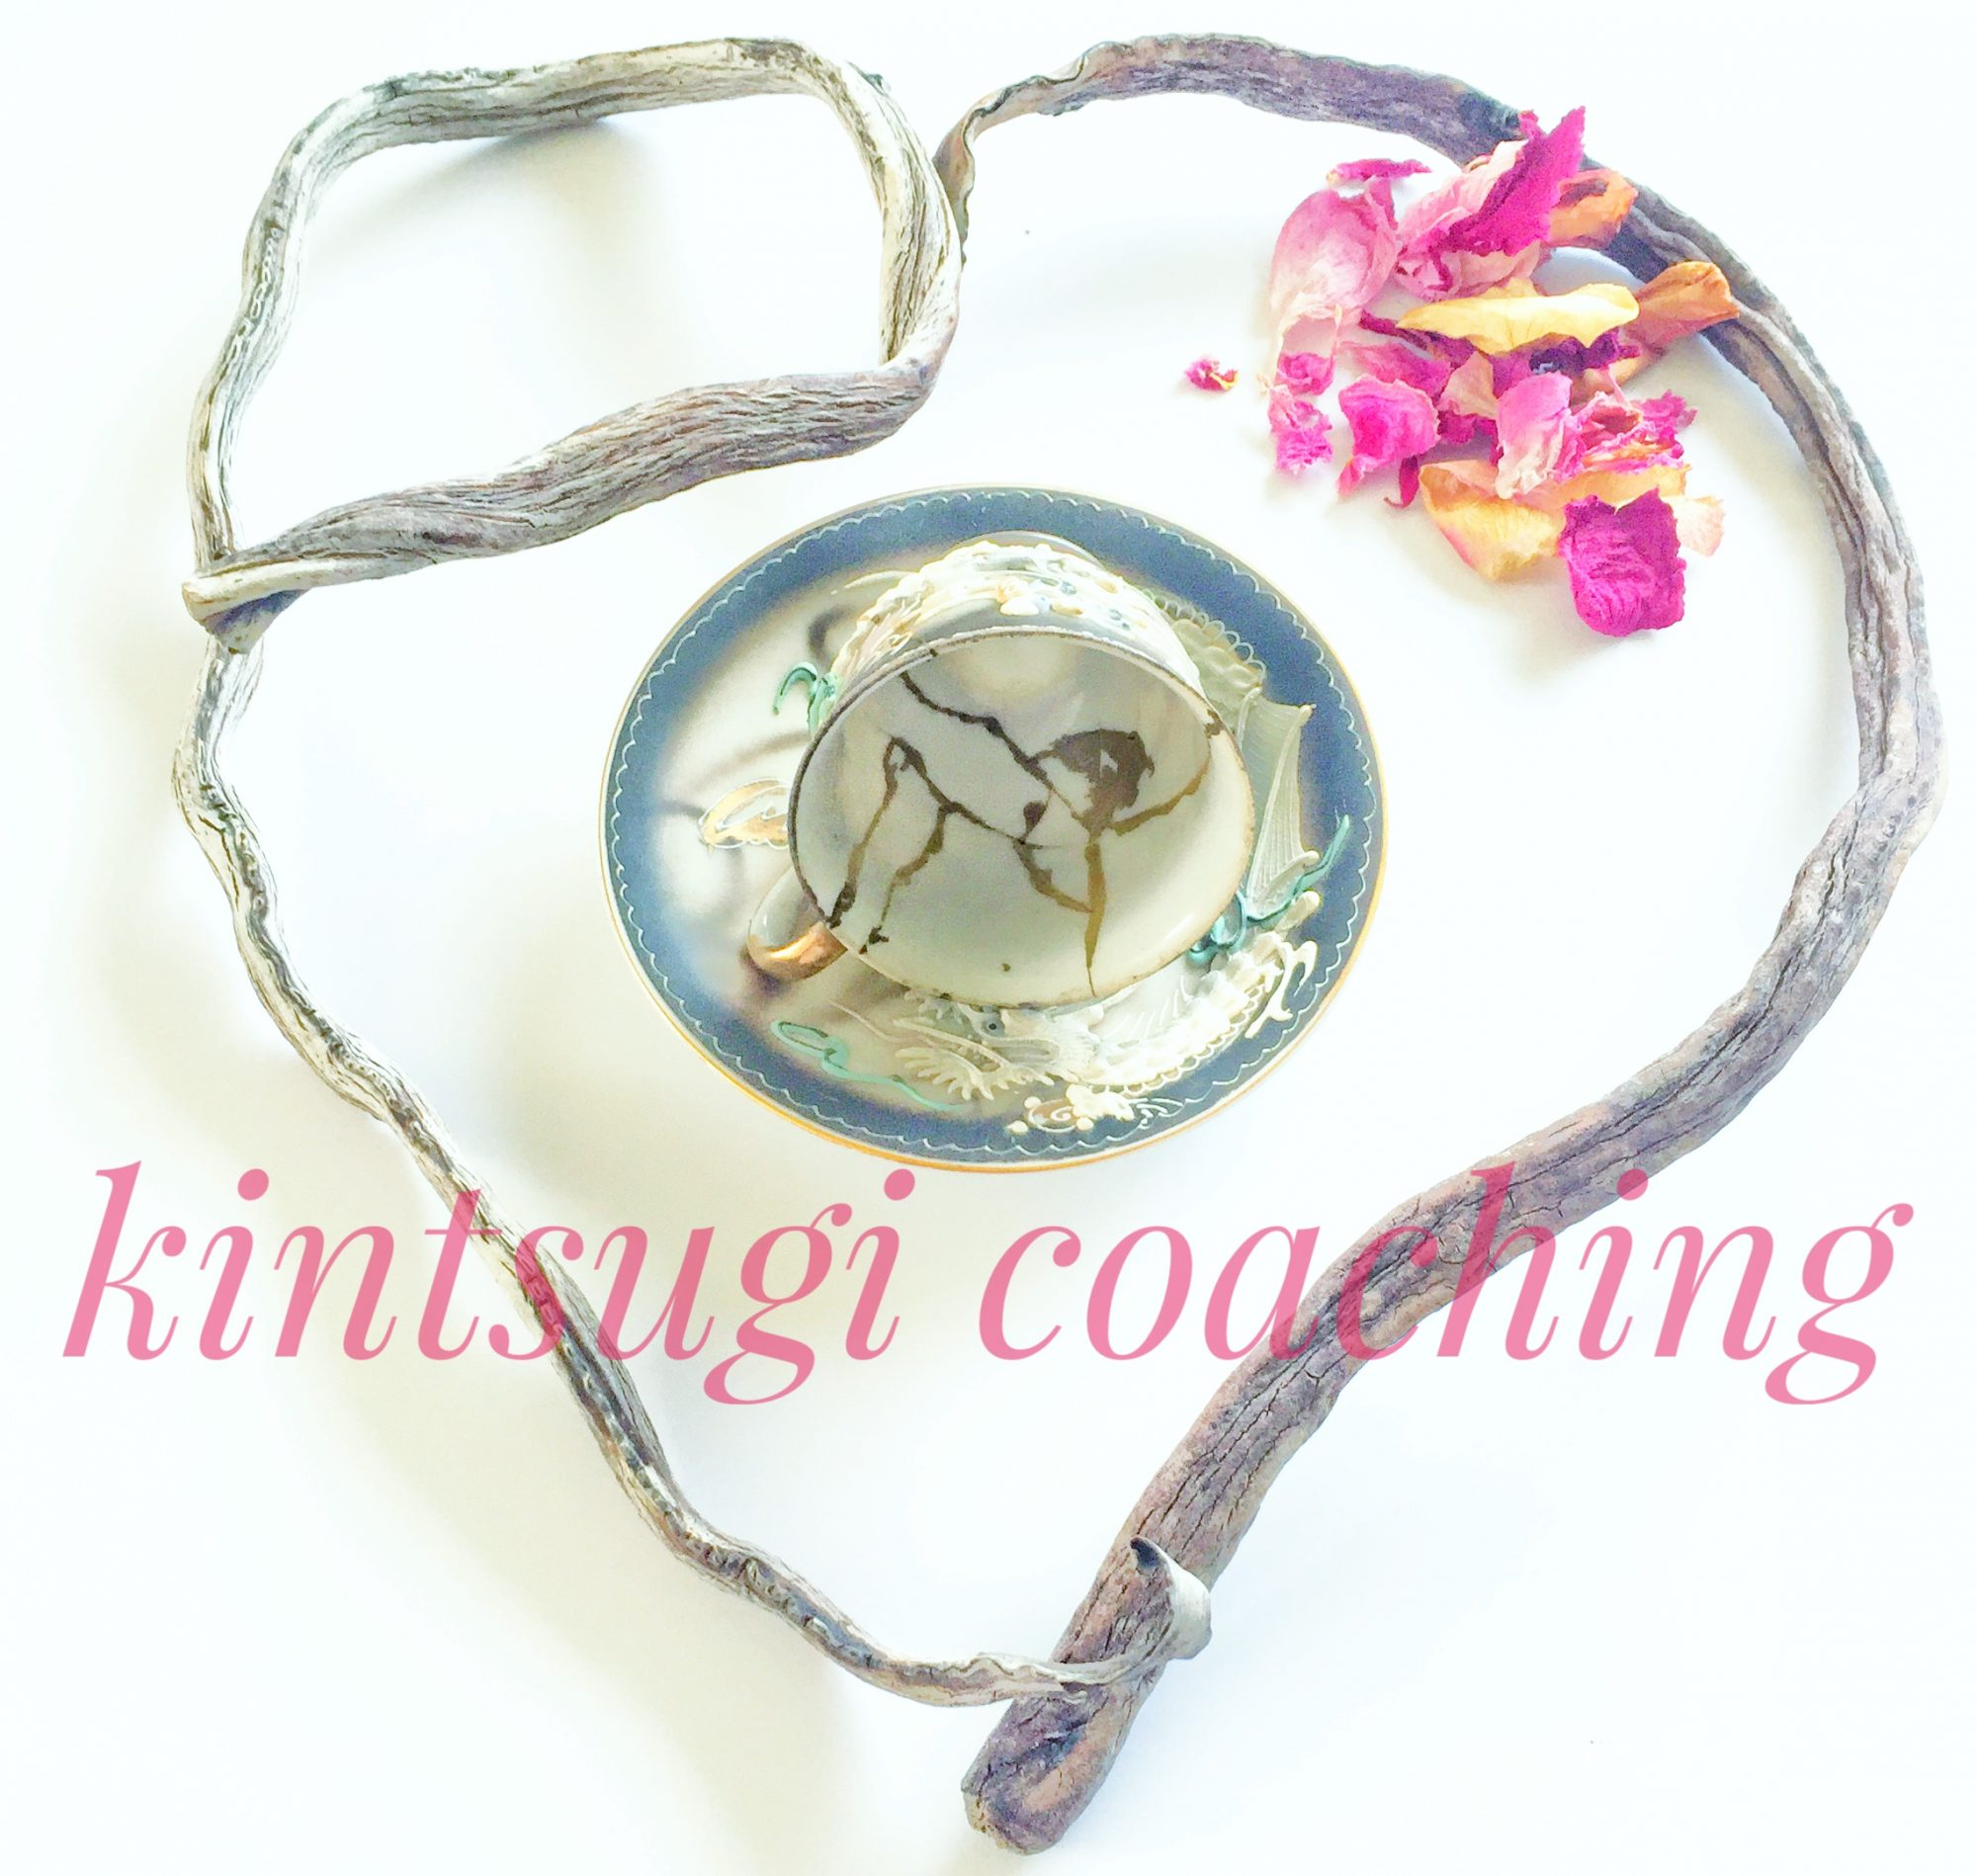 Art and Soul Kintsugi Coaching